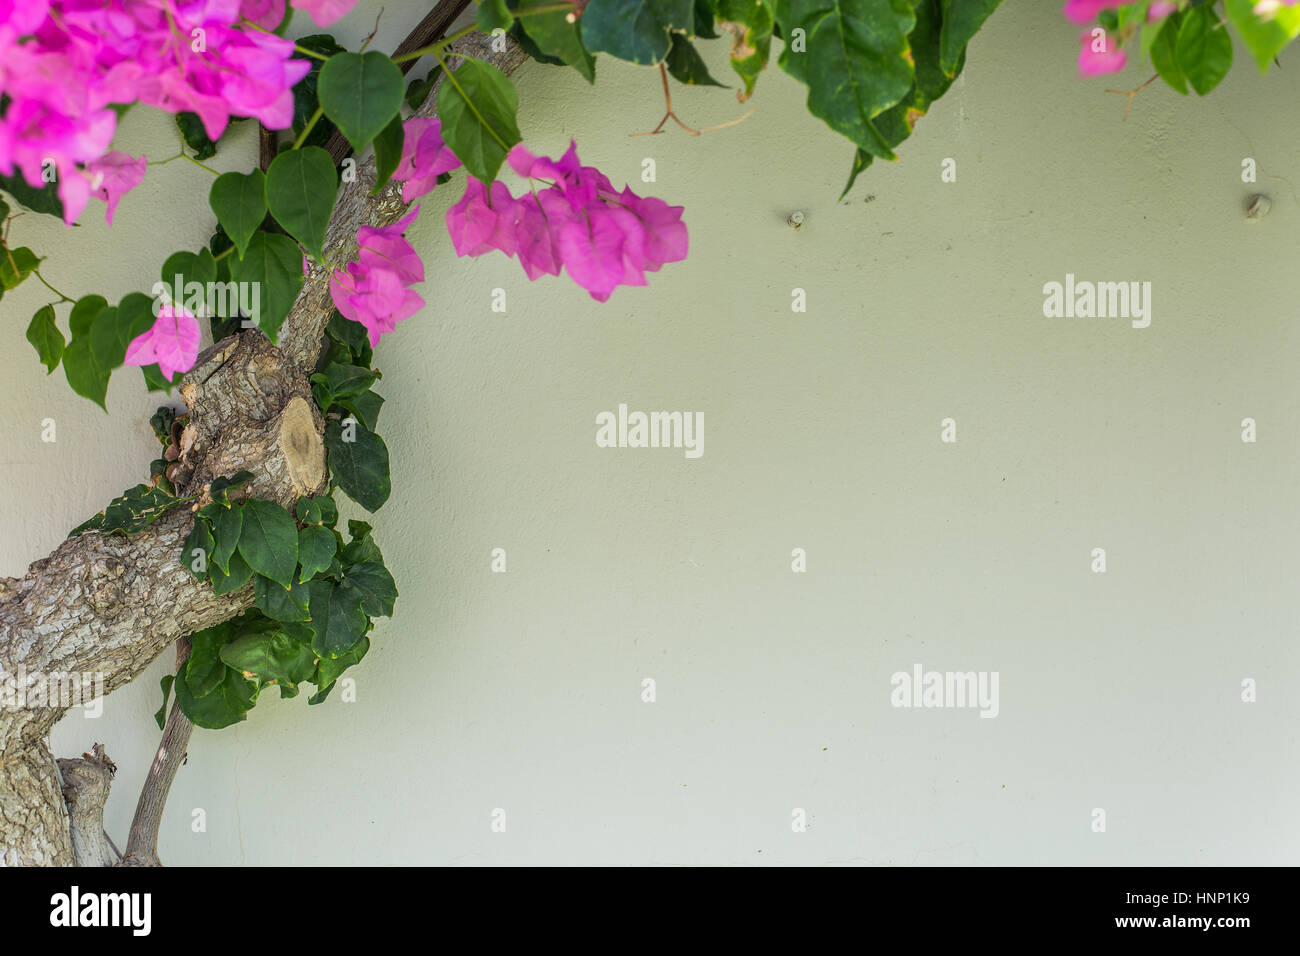 Evergreen Bougainville shrub as the wall decoration. - Stock Image